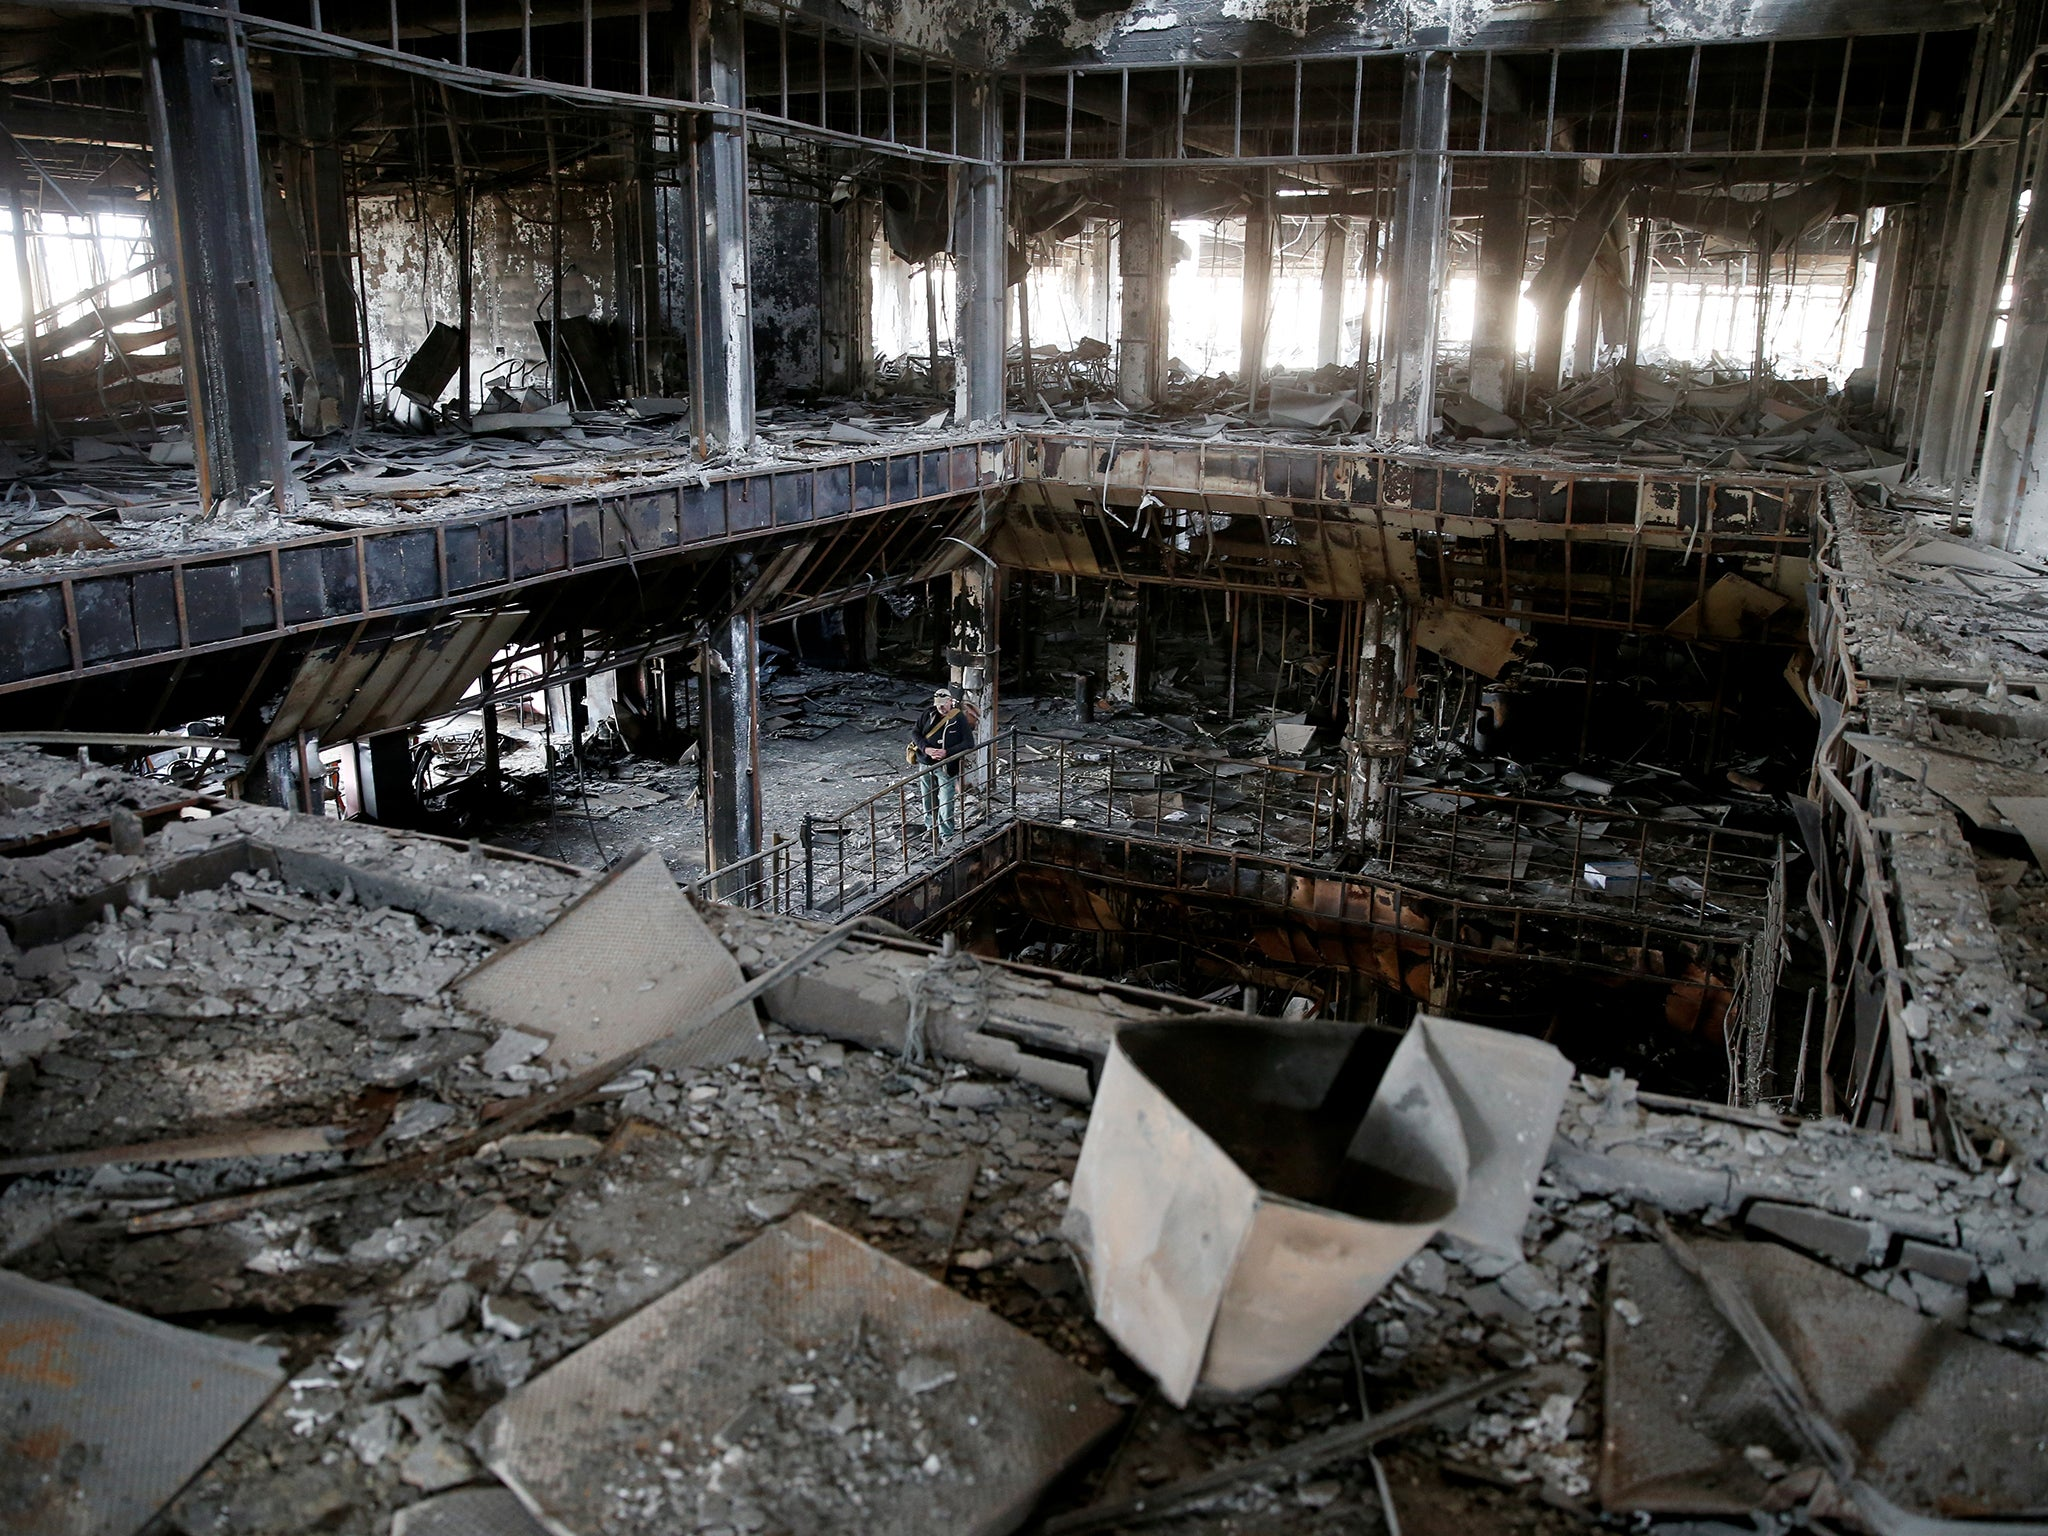 Islamic state destroyed the main library in the city of Mosul 02/23/2015 18